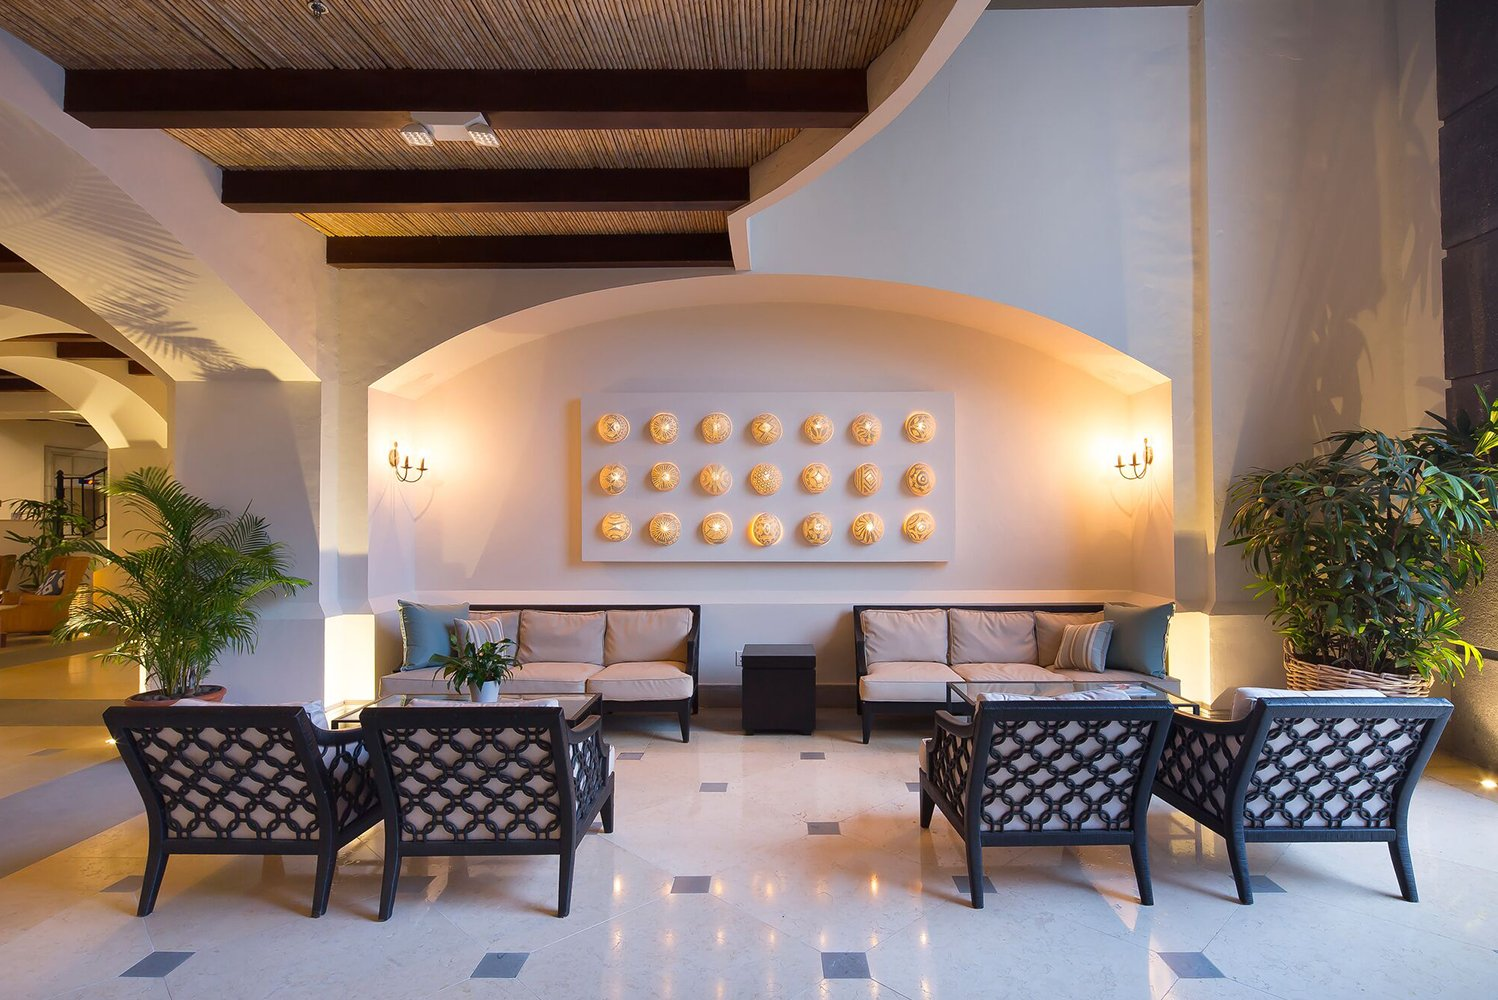 The Buenaventura was built around a 100-year-old Corotu tree, incorporating Panamanian elements into its design.